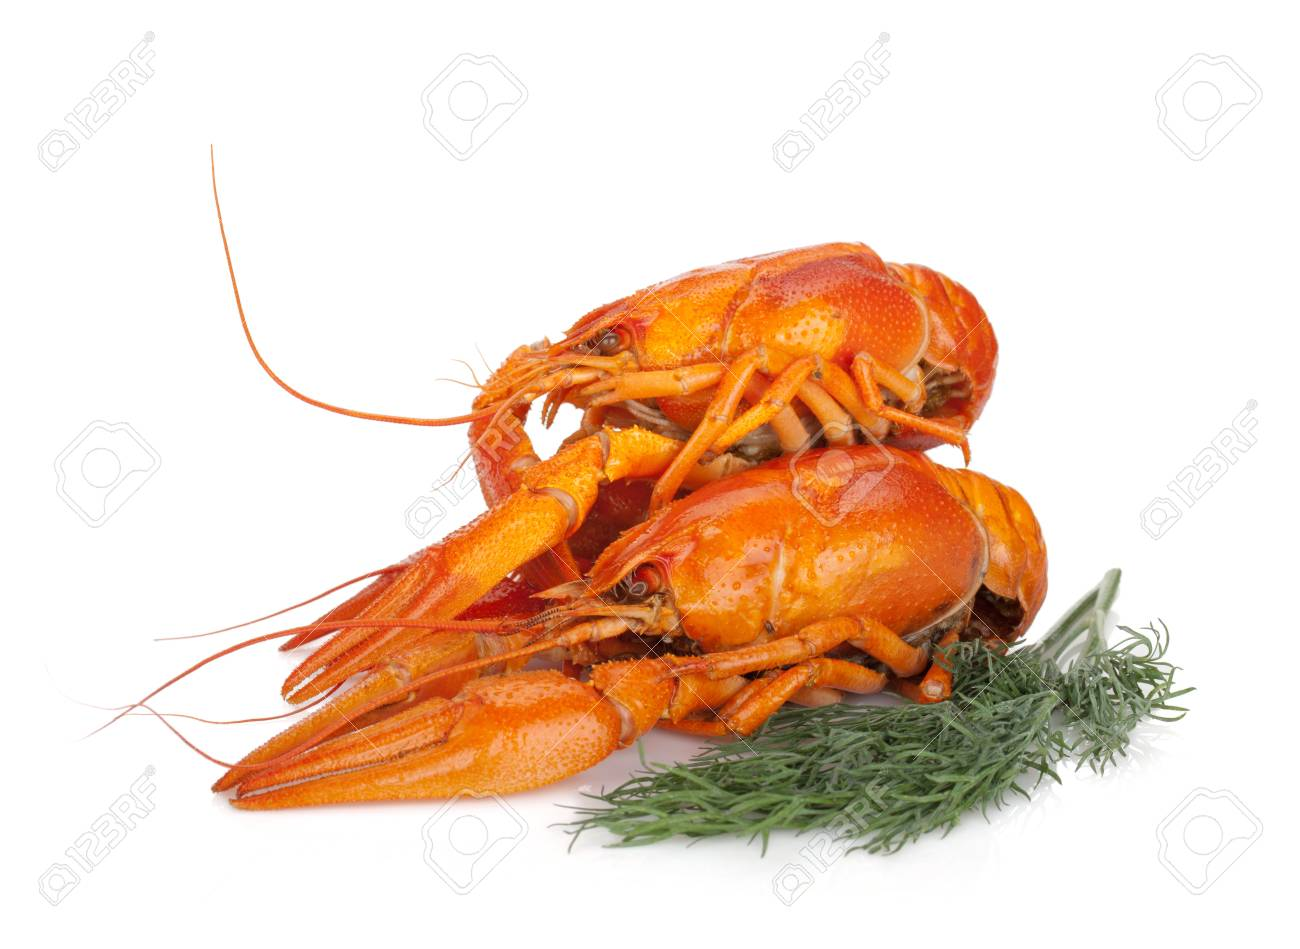 Boiled crayfishes with dill  Isolated on a white background Stock Photo - 15372613